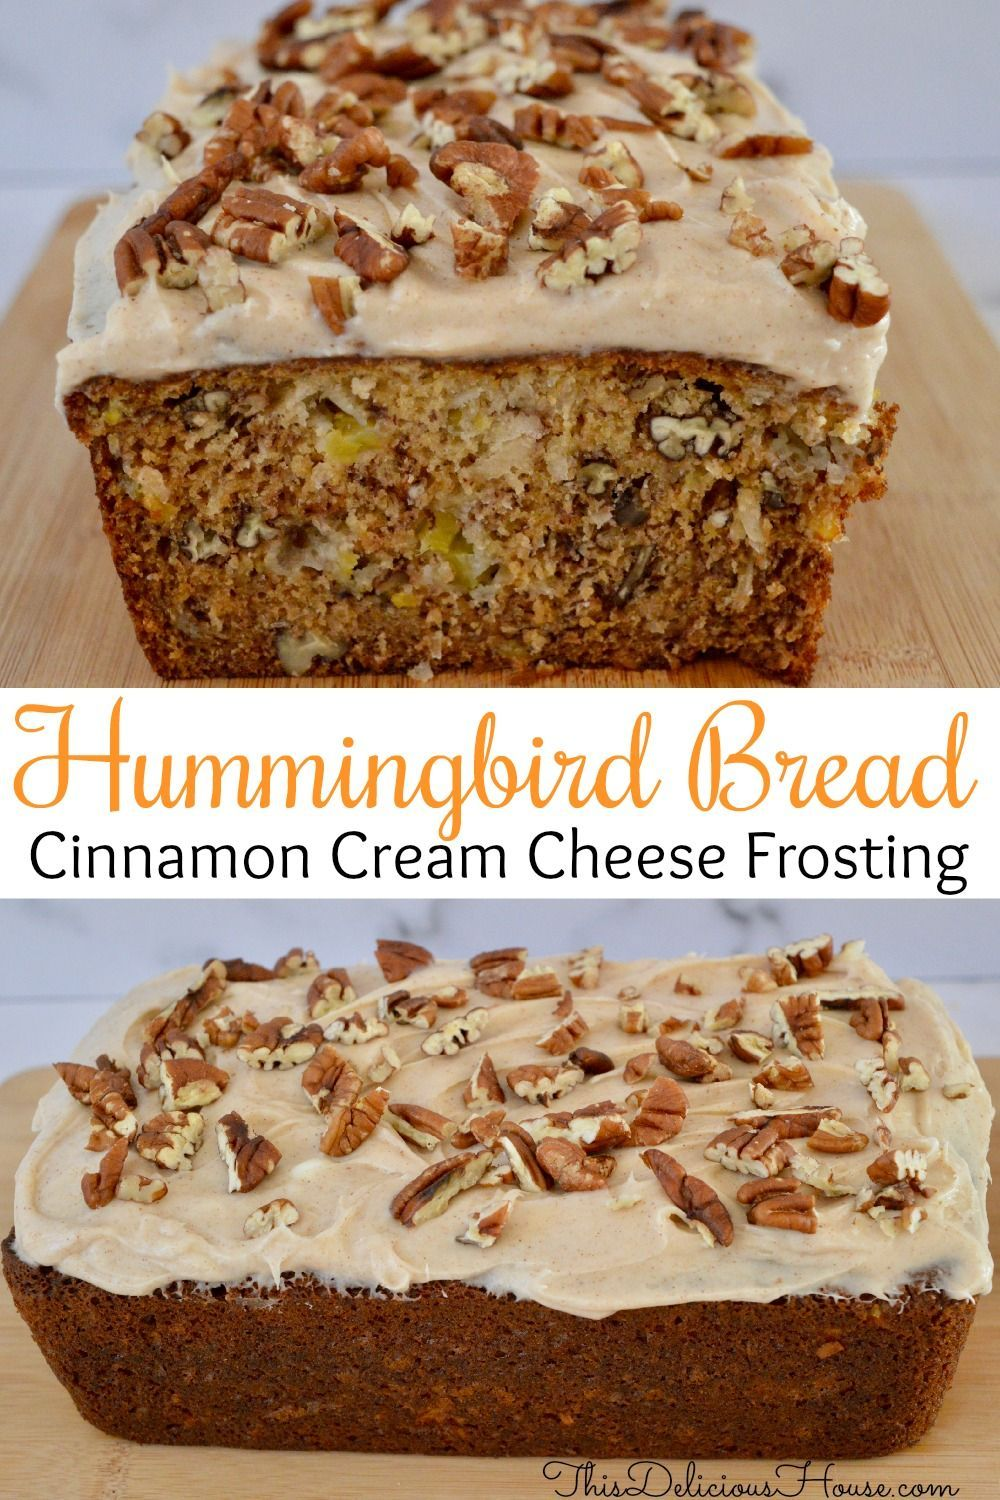 Hummingbird Bread Cream Cheese Frosting